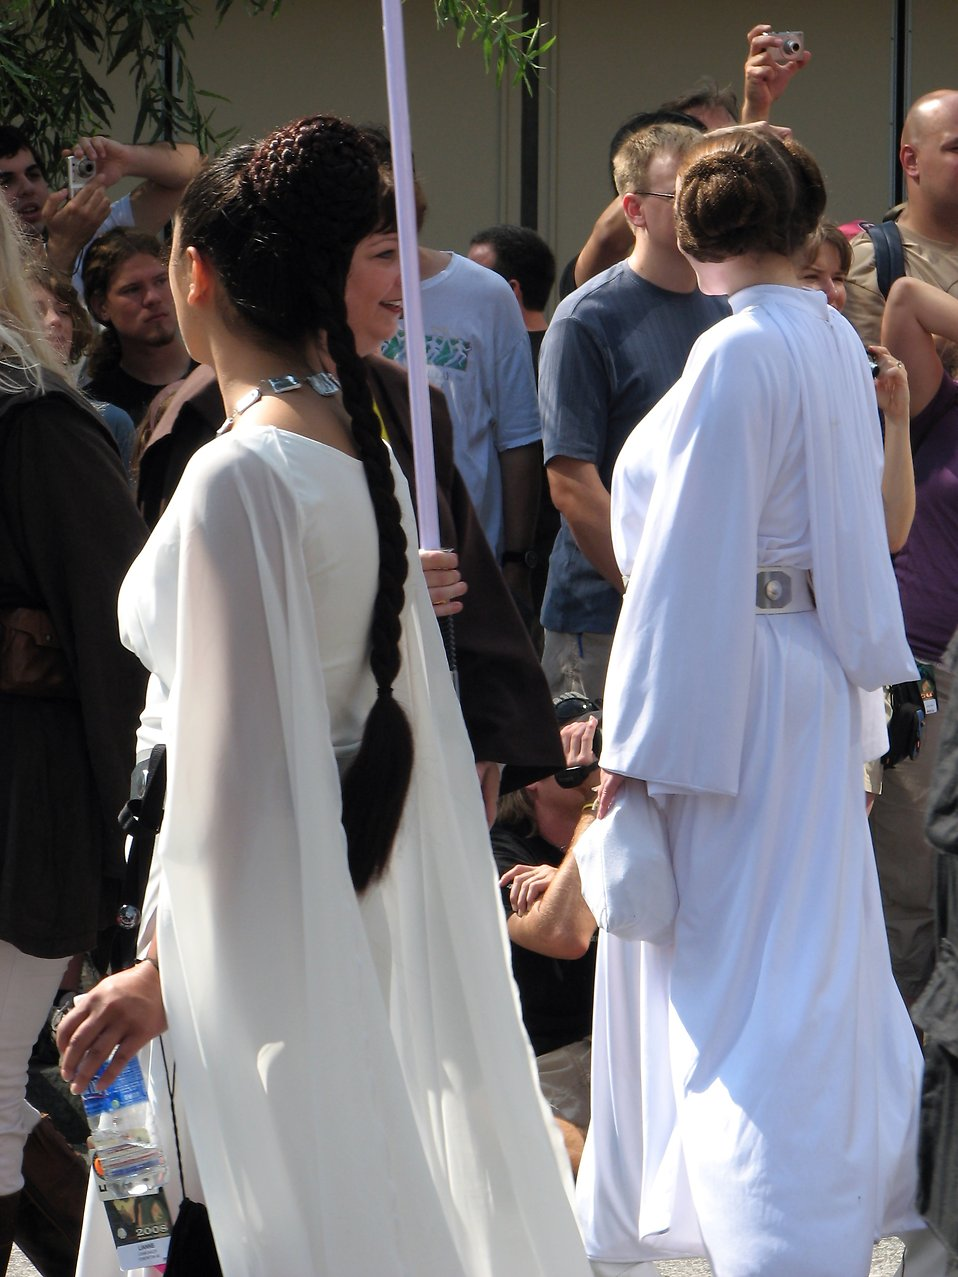 Two women in Princess Leia costumes in 2008 Dragoncon parade : Free Stock Photo